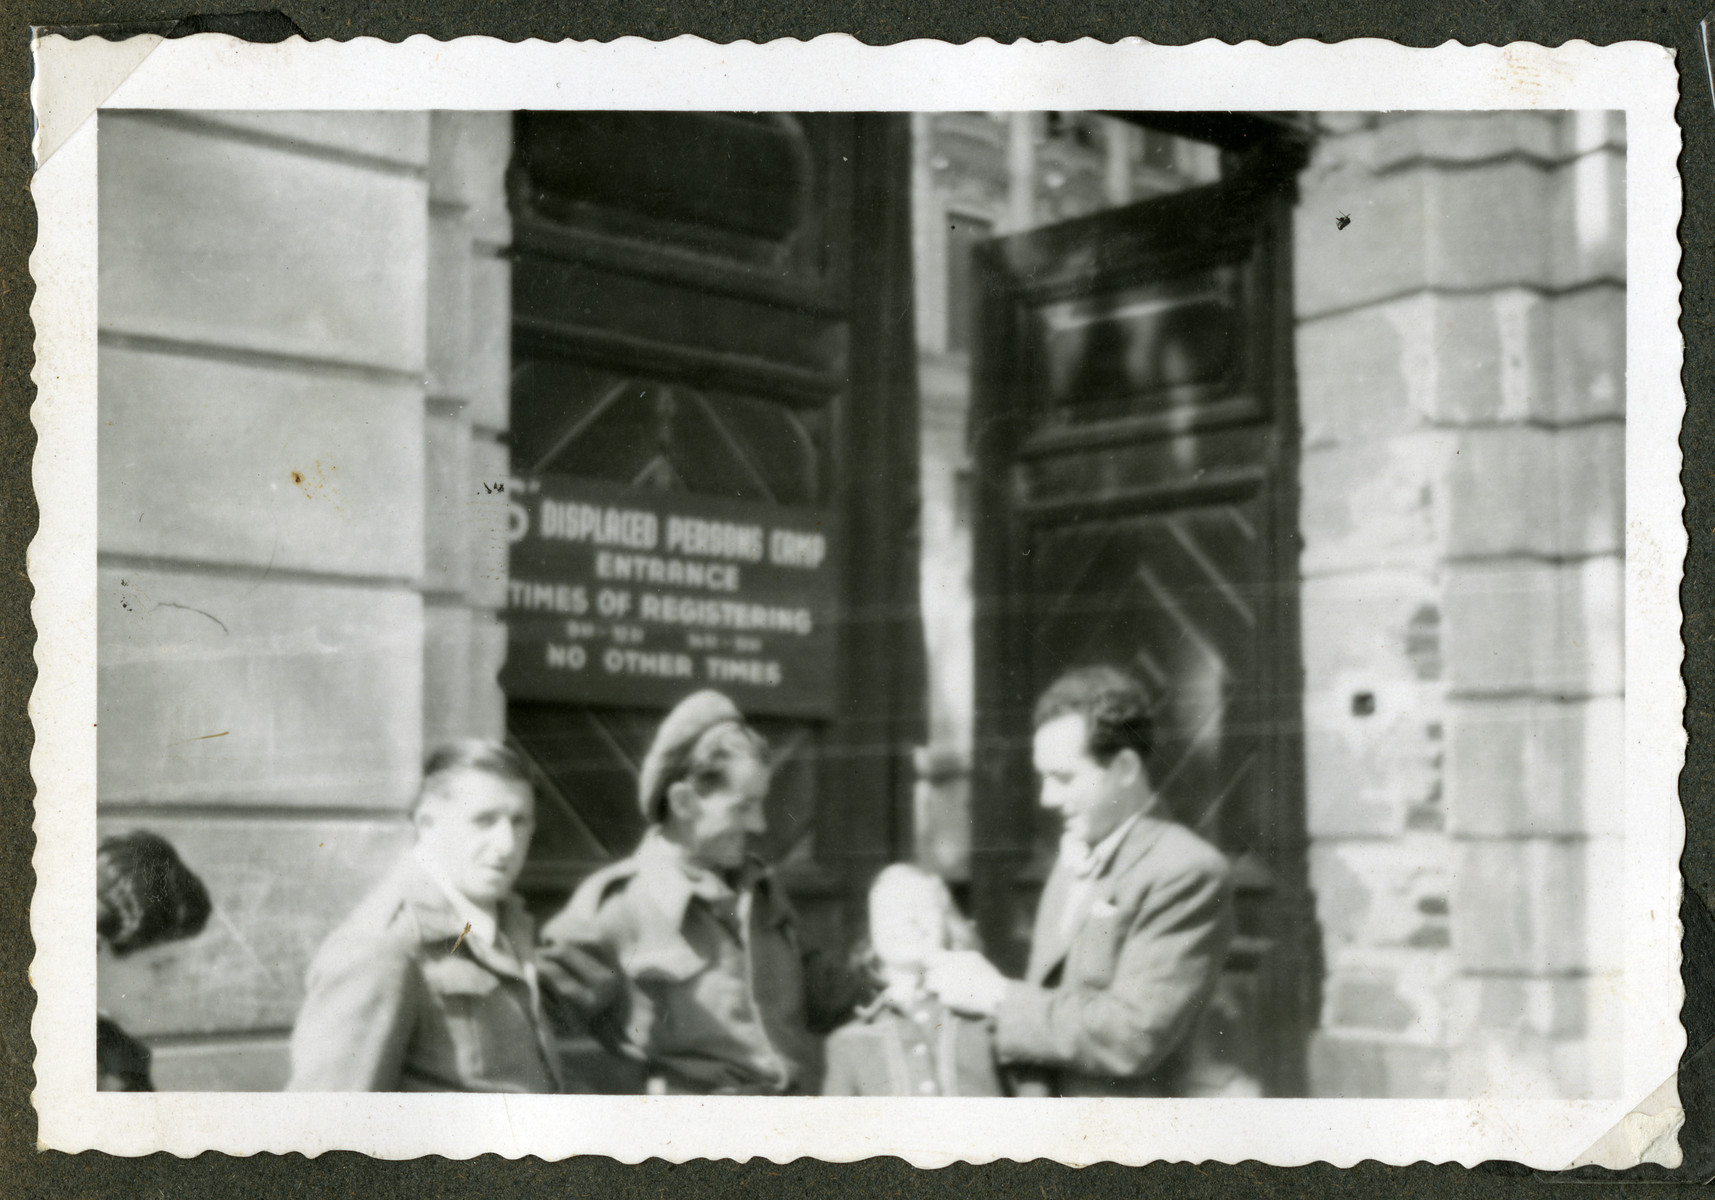 Rosian Bagriansky kids around with British soldiers outside the entrance to a building in the Graz displaced person's camp.